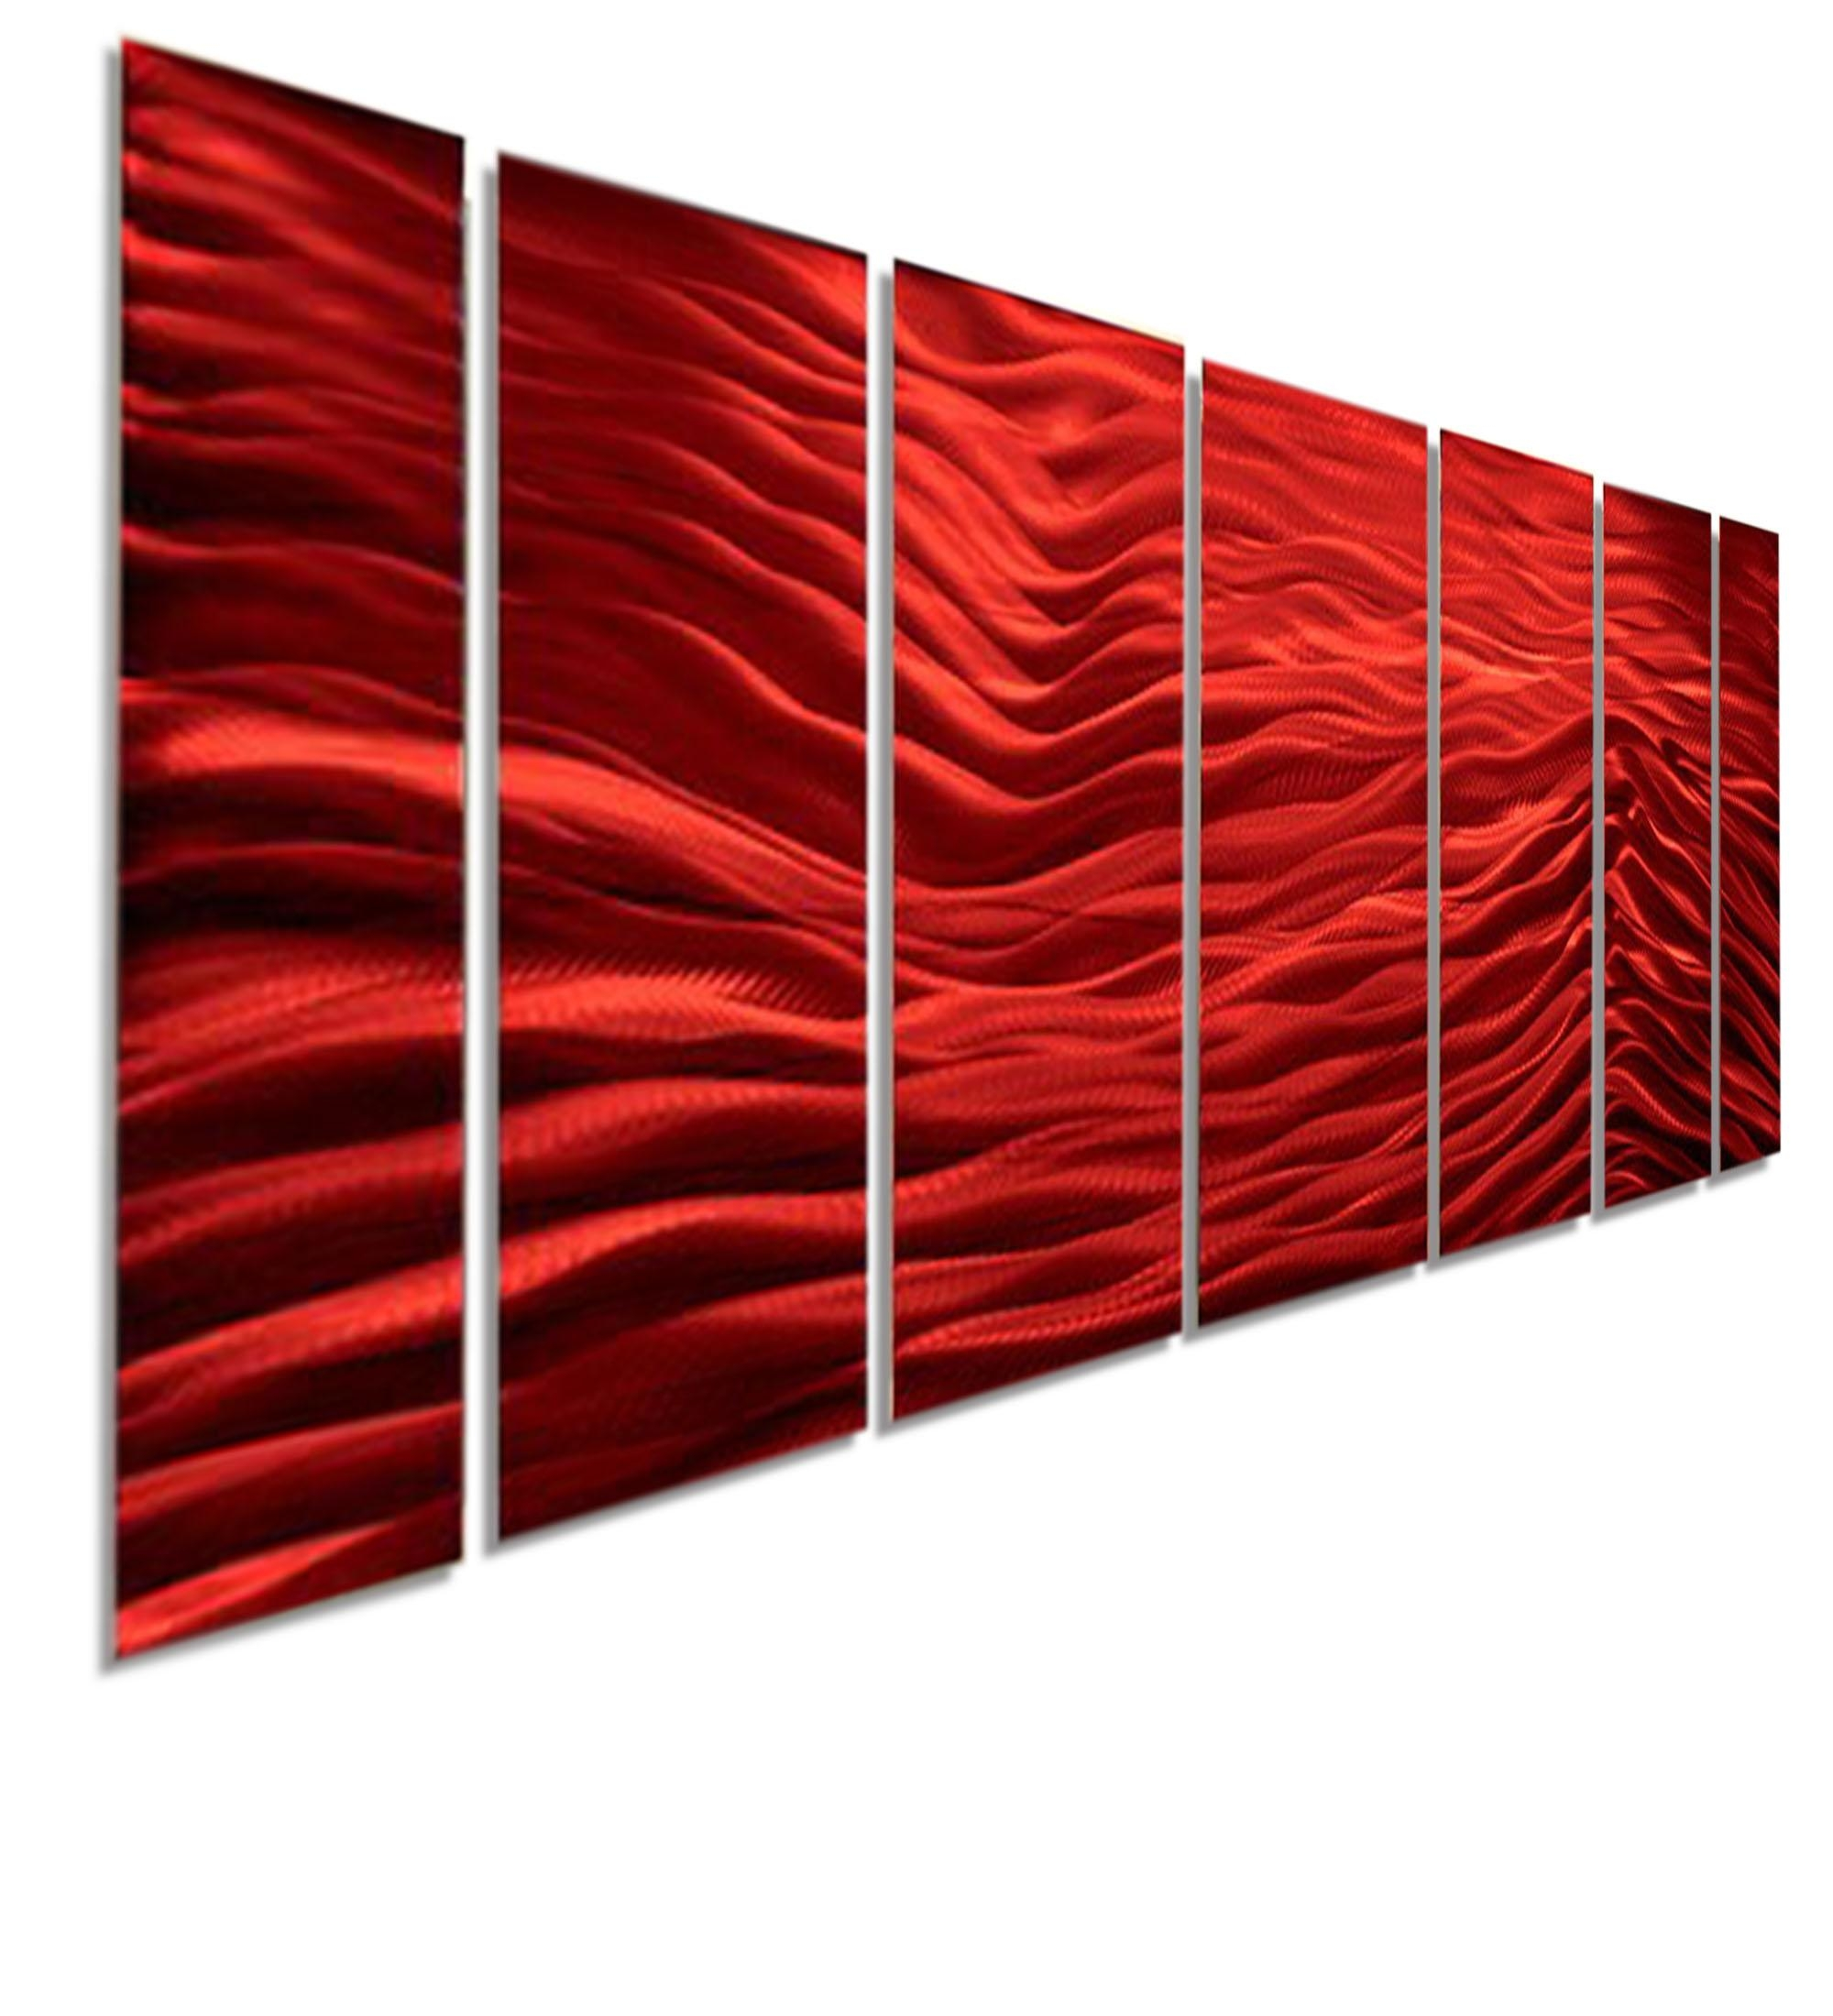 Red Wave Ii Xl – Extra Large Modern Contemporary Metal Wall Art In Large Contemporary Wall Art (View 19 of 20)